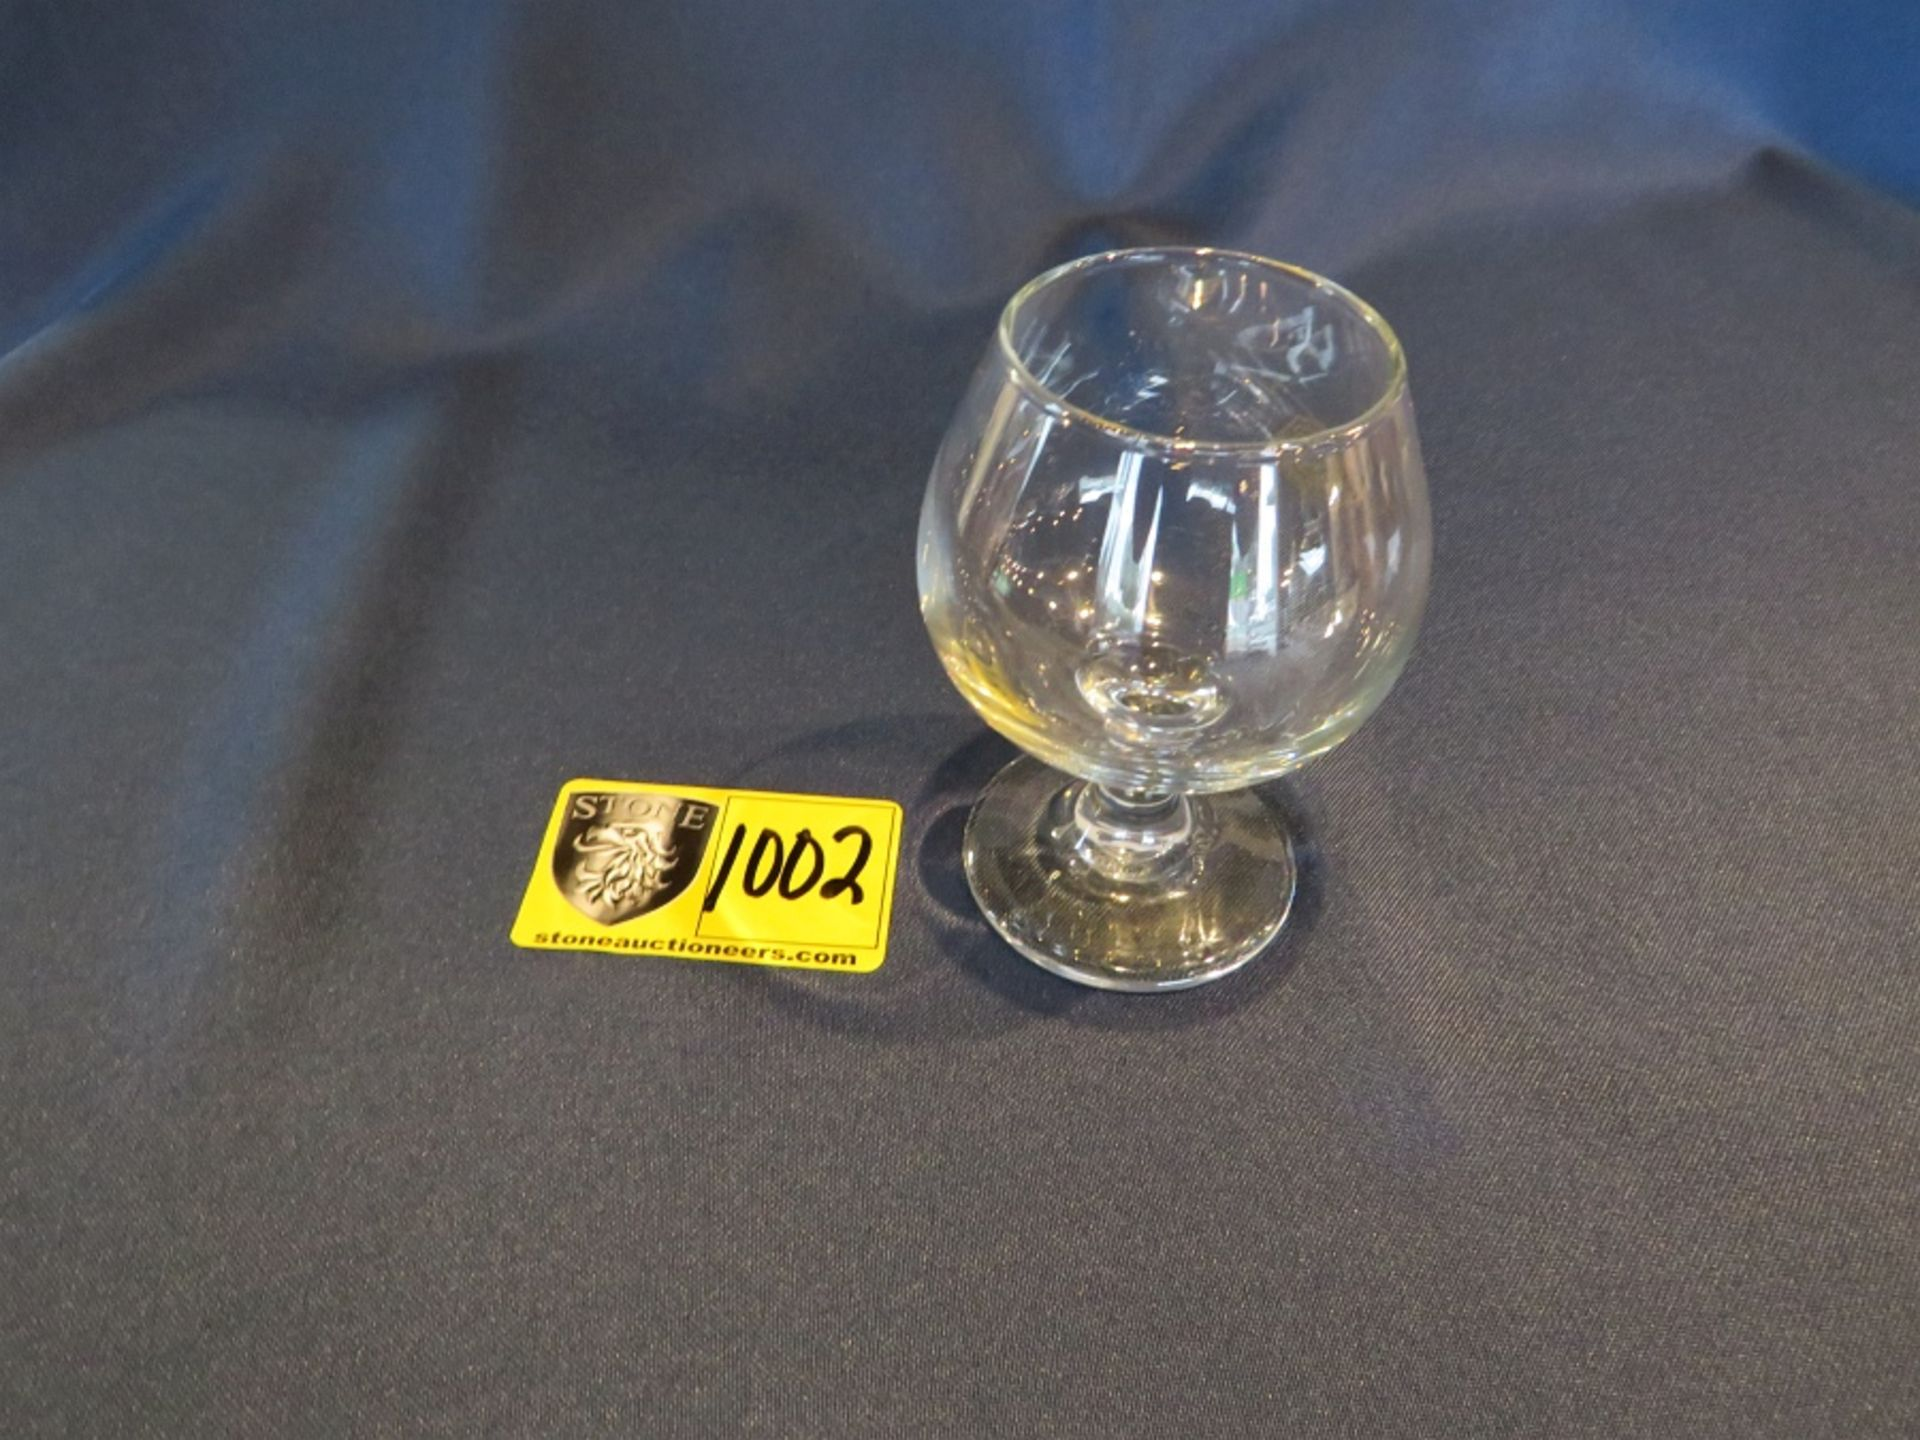 Lot 1002 - BOURBON TASTING GLASS 5.5OZ